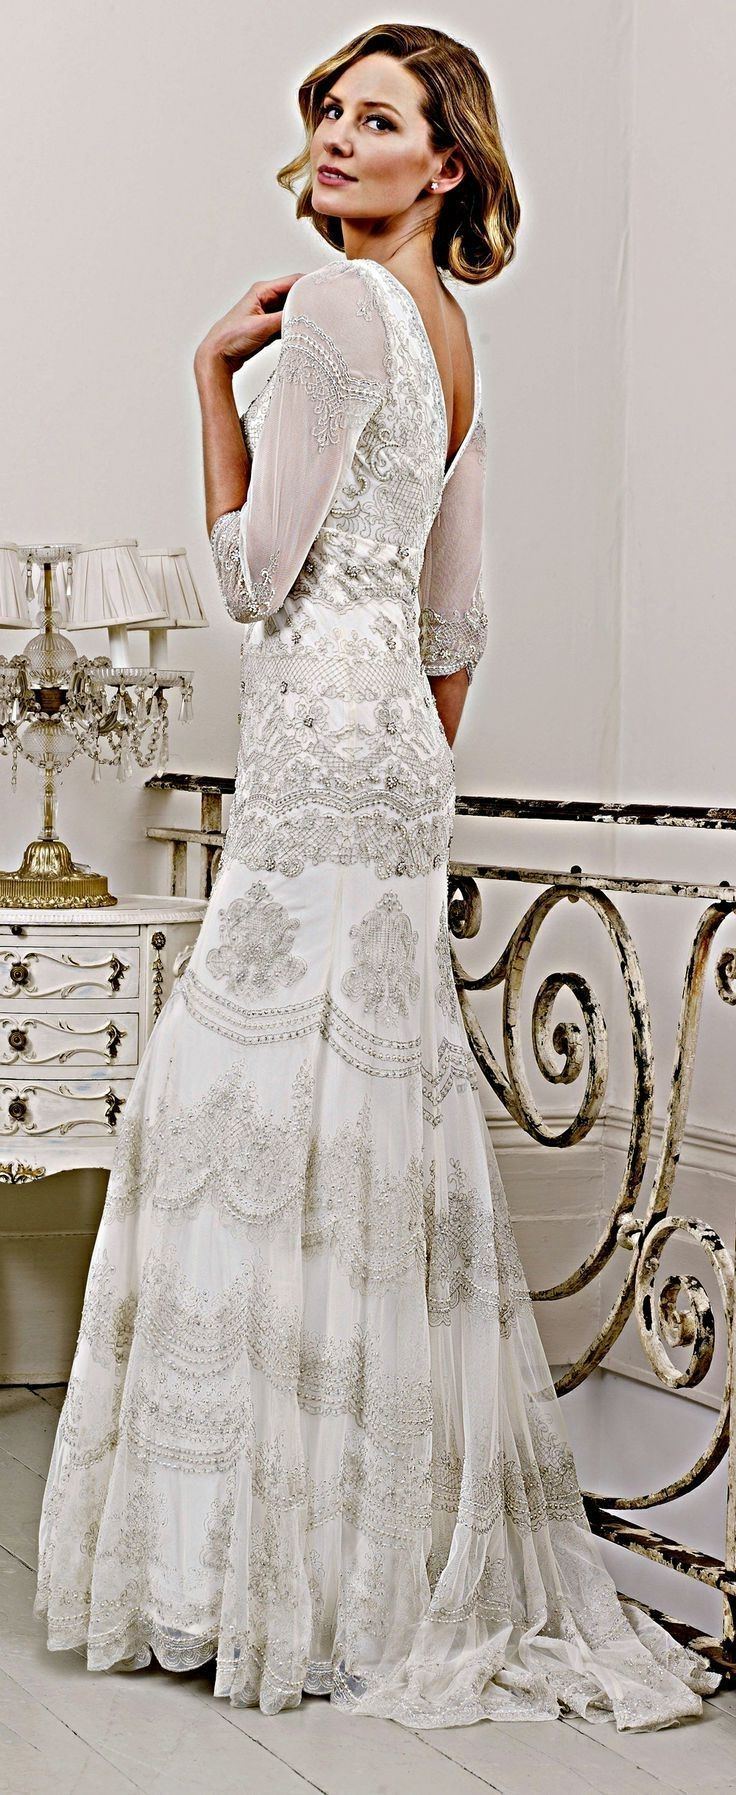 Wedding Dresses For Second Marriage Over 40dresses